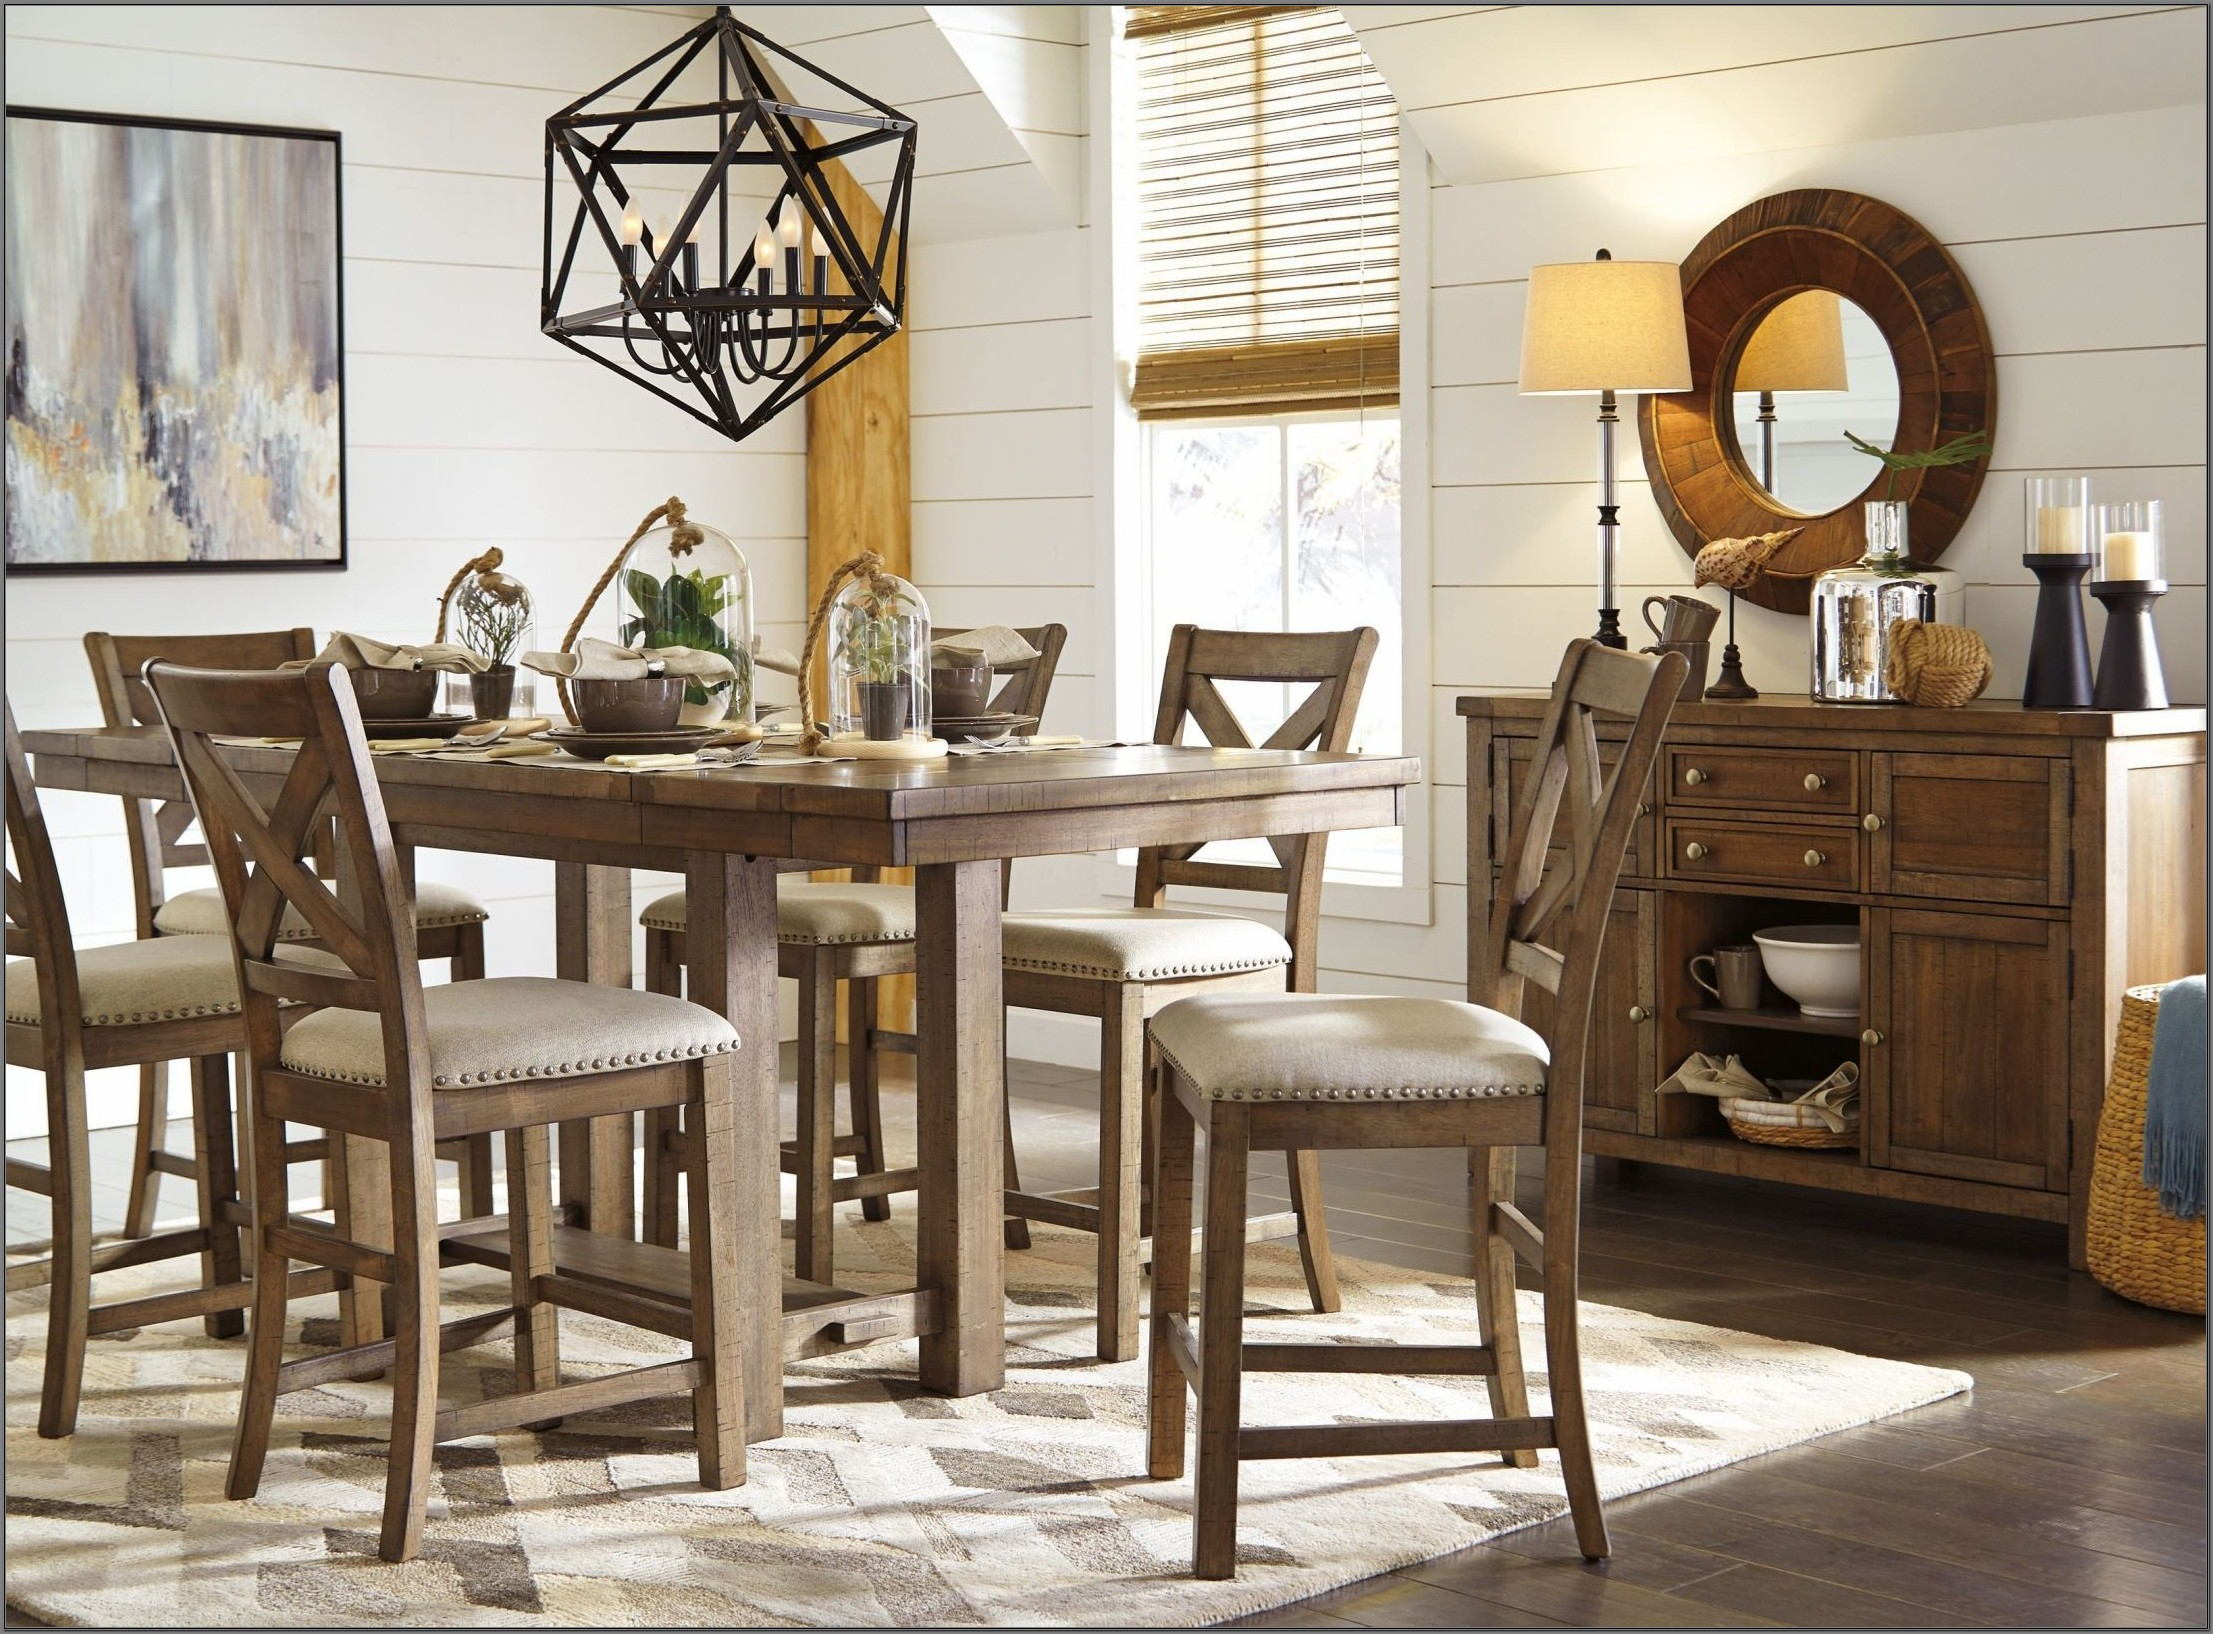 Moriville Counter Height Dining Room Set